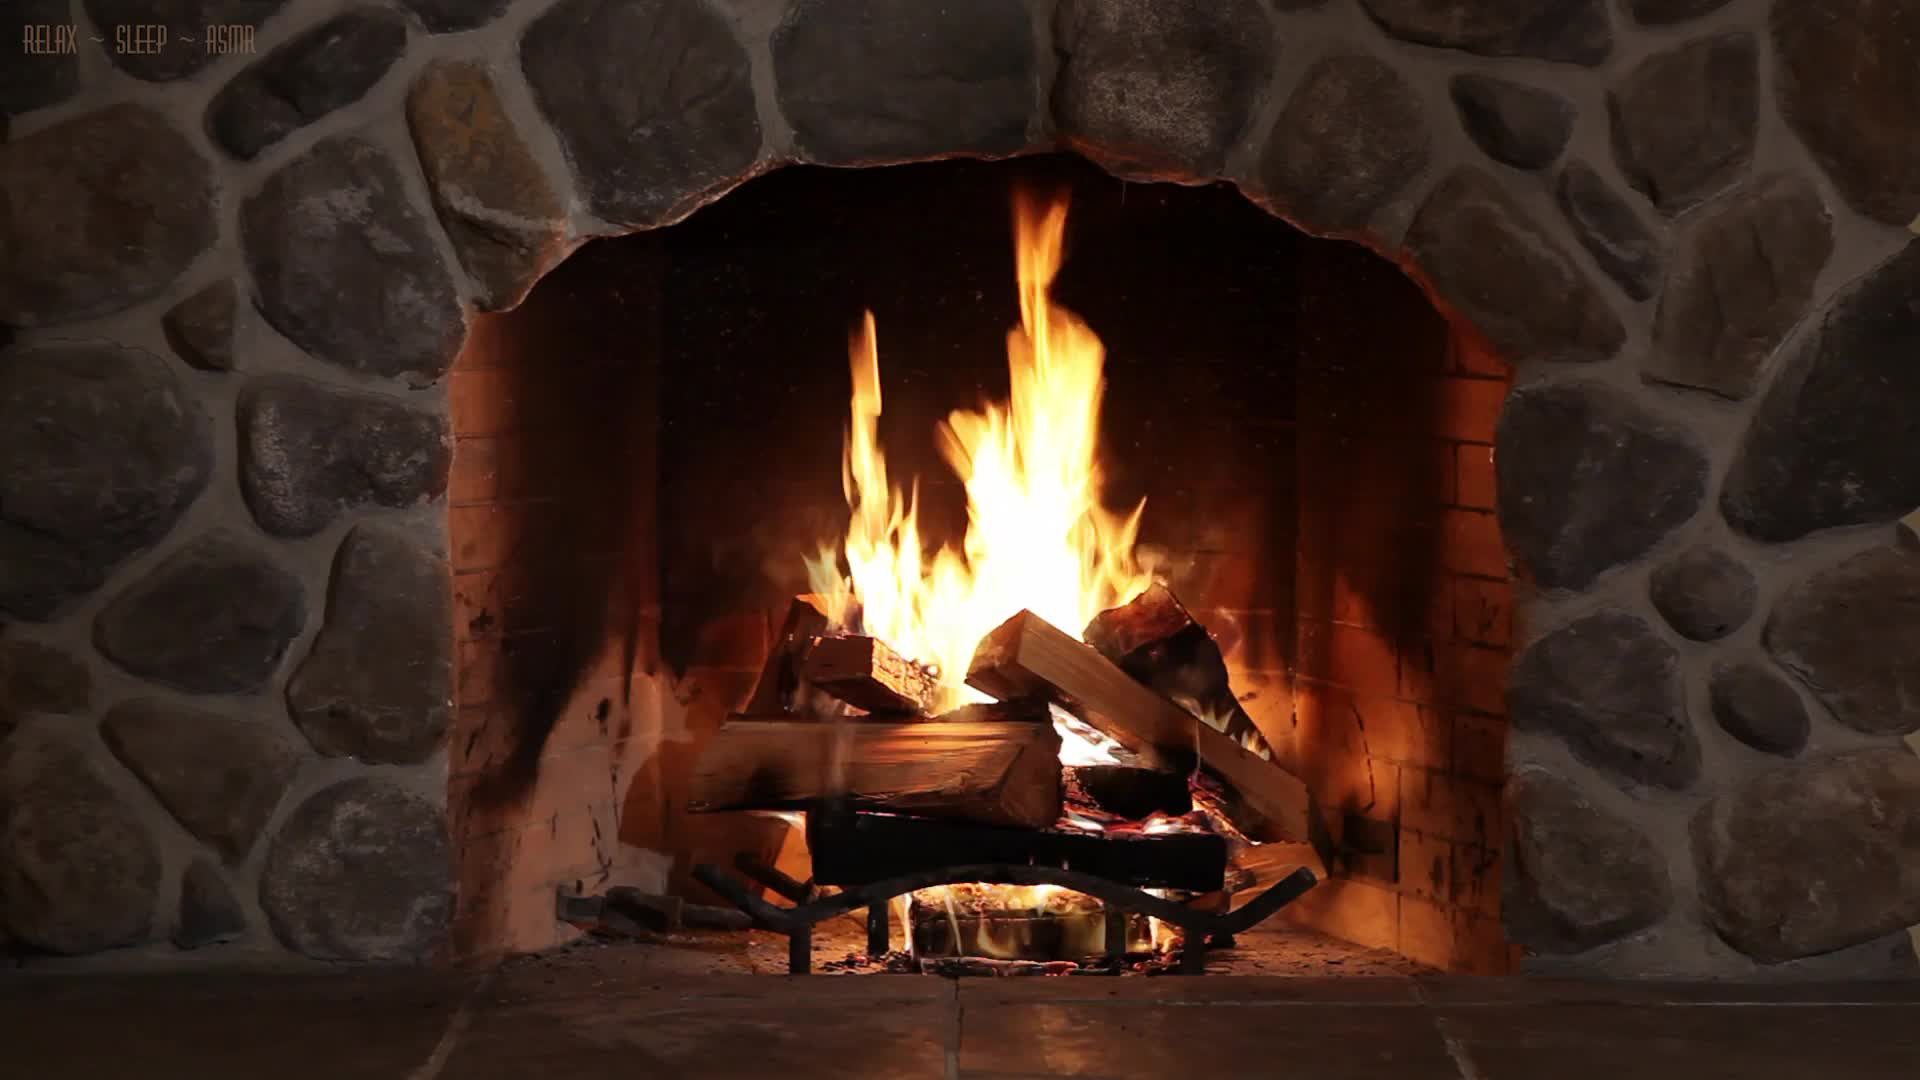 Tv Fireplace With Relaxing Crackling Sounds Of Wood Burning 10